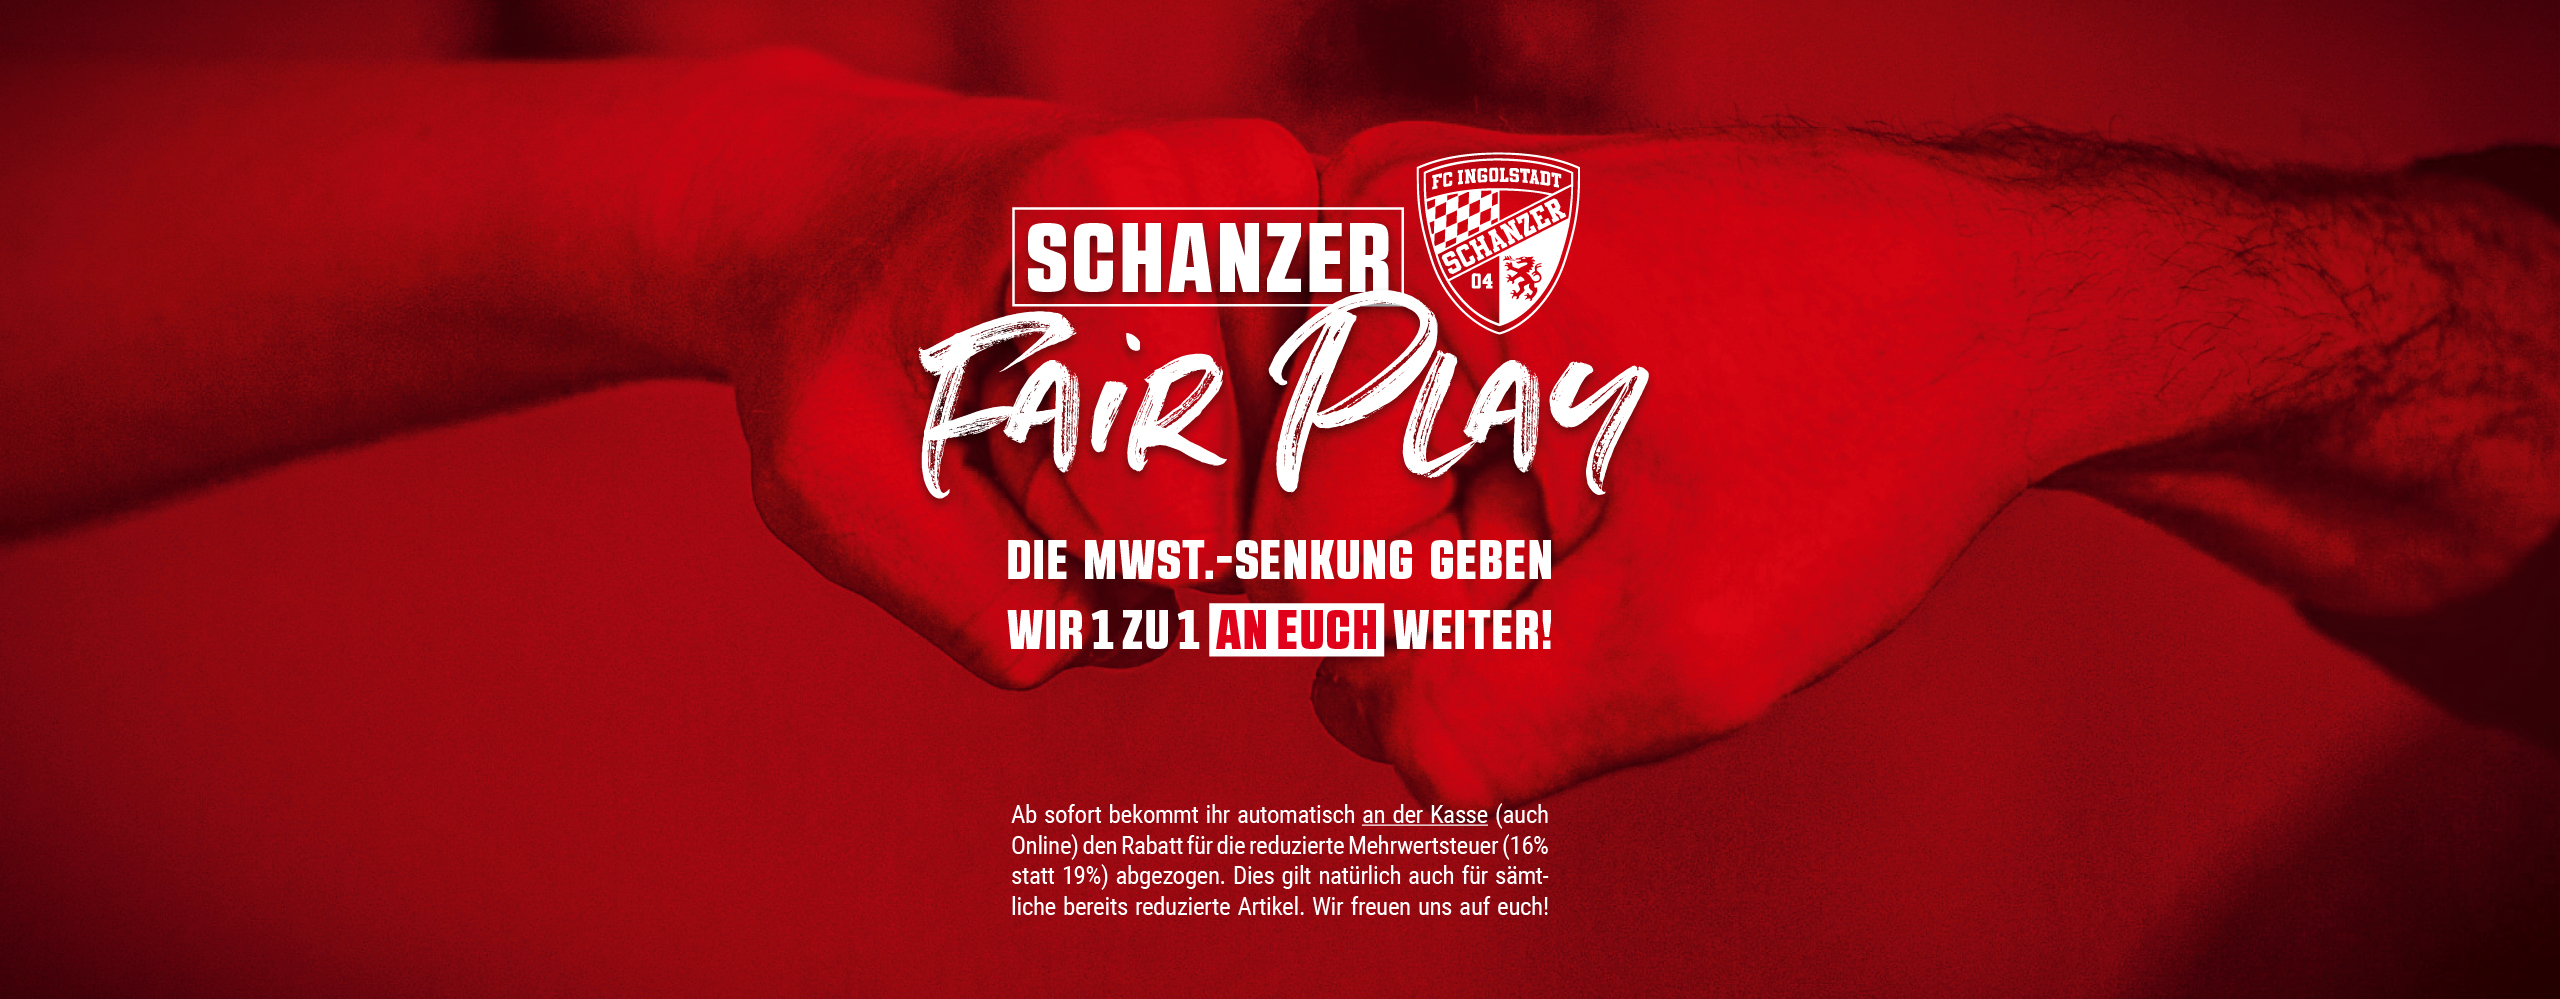 SCHANZER Fair Play